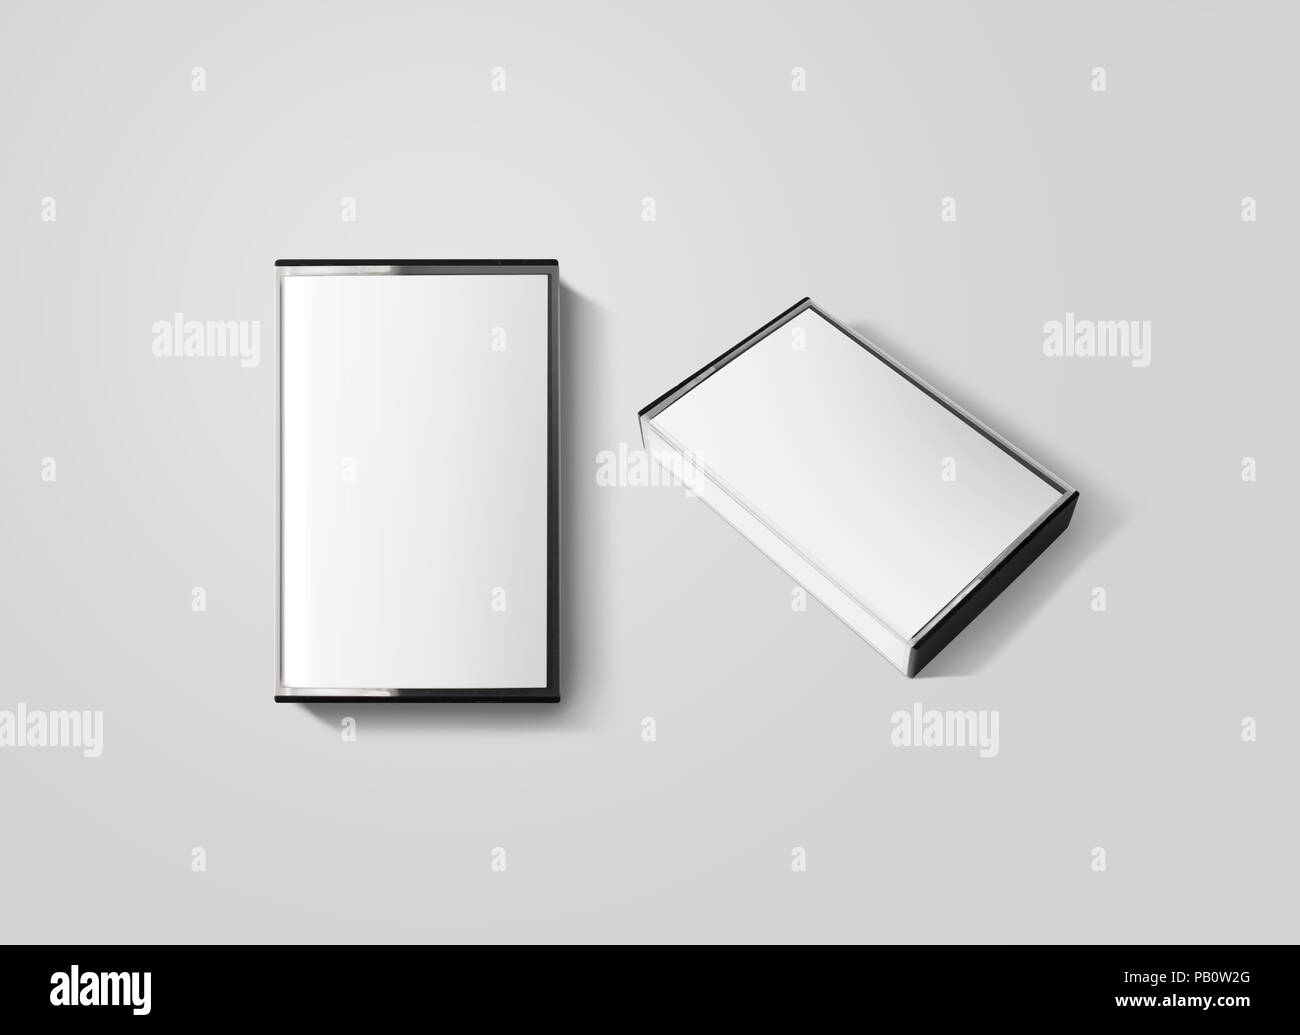 Blank cassette tape box design mockup, isolated, top and side view. Vintage cassete tape case retro mock up. Plastic analog magnetic tape casete clear - Stock Image